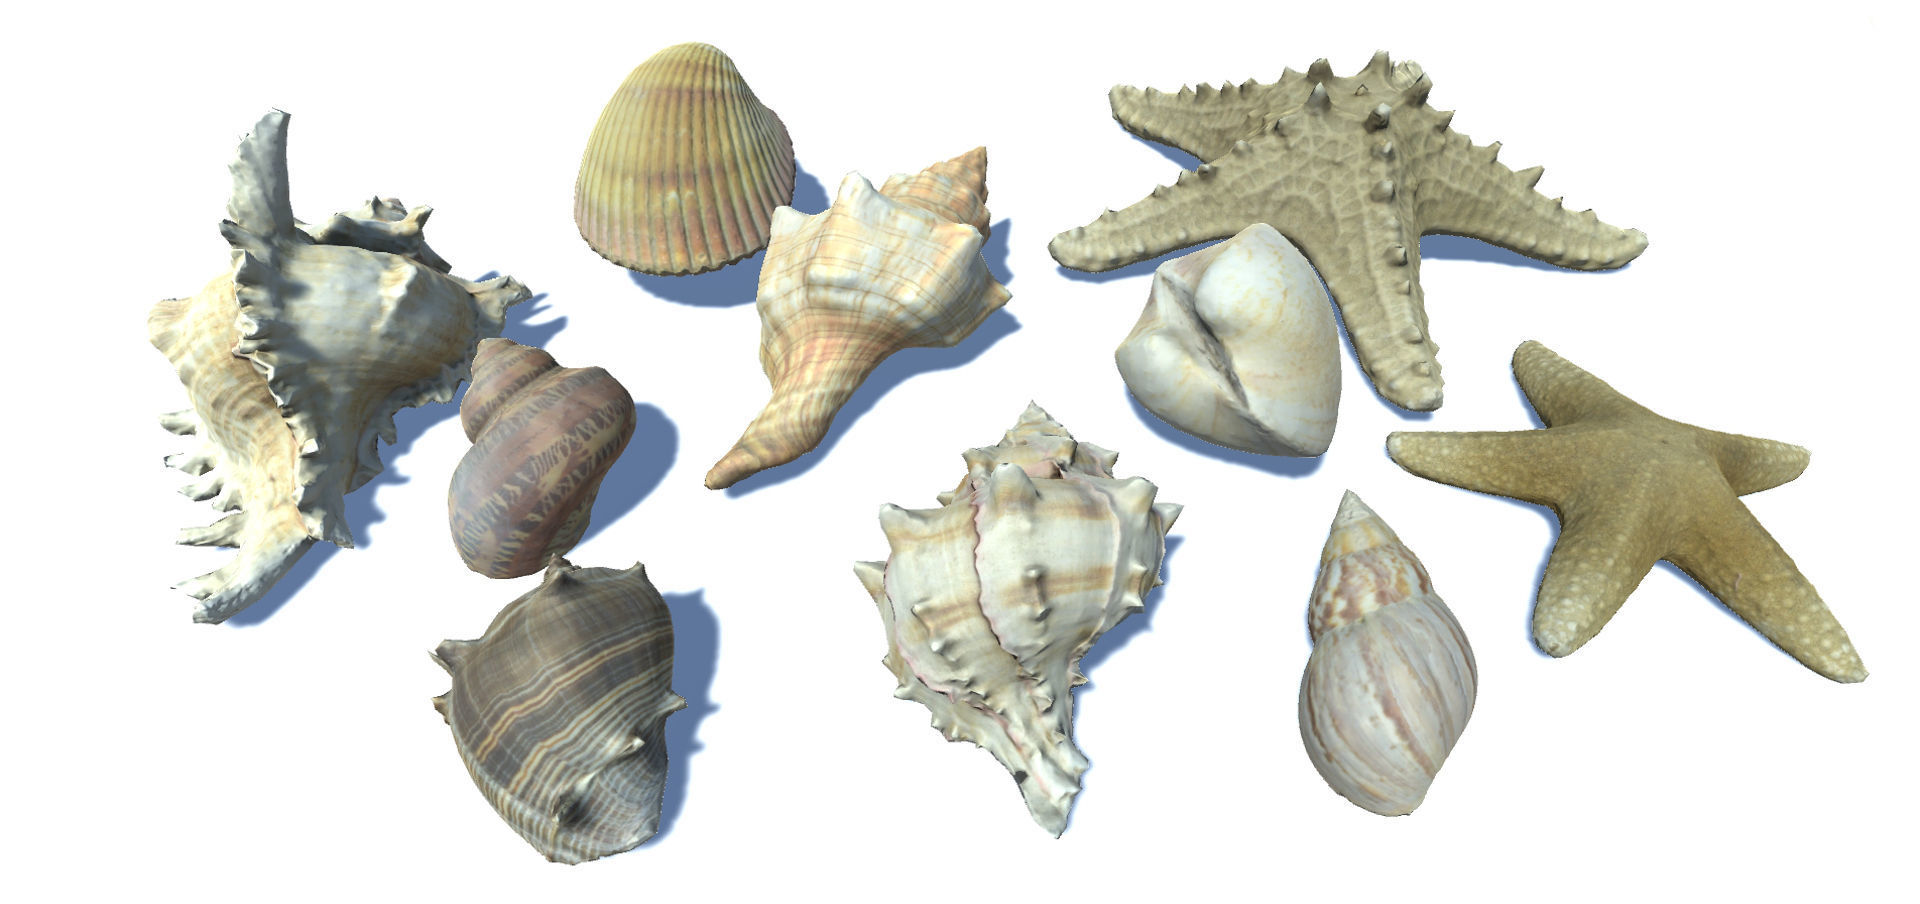 Seashells and Starfishes Vol 3